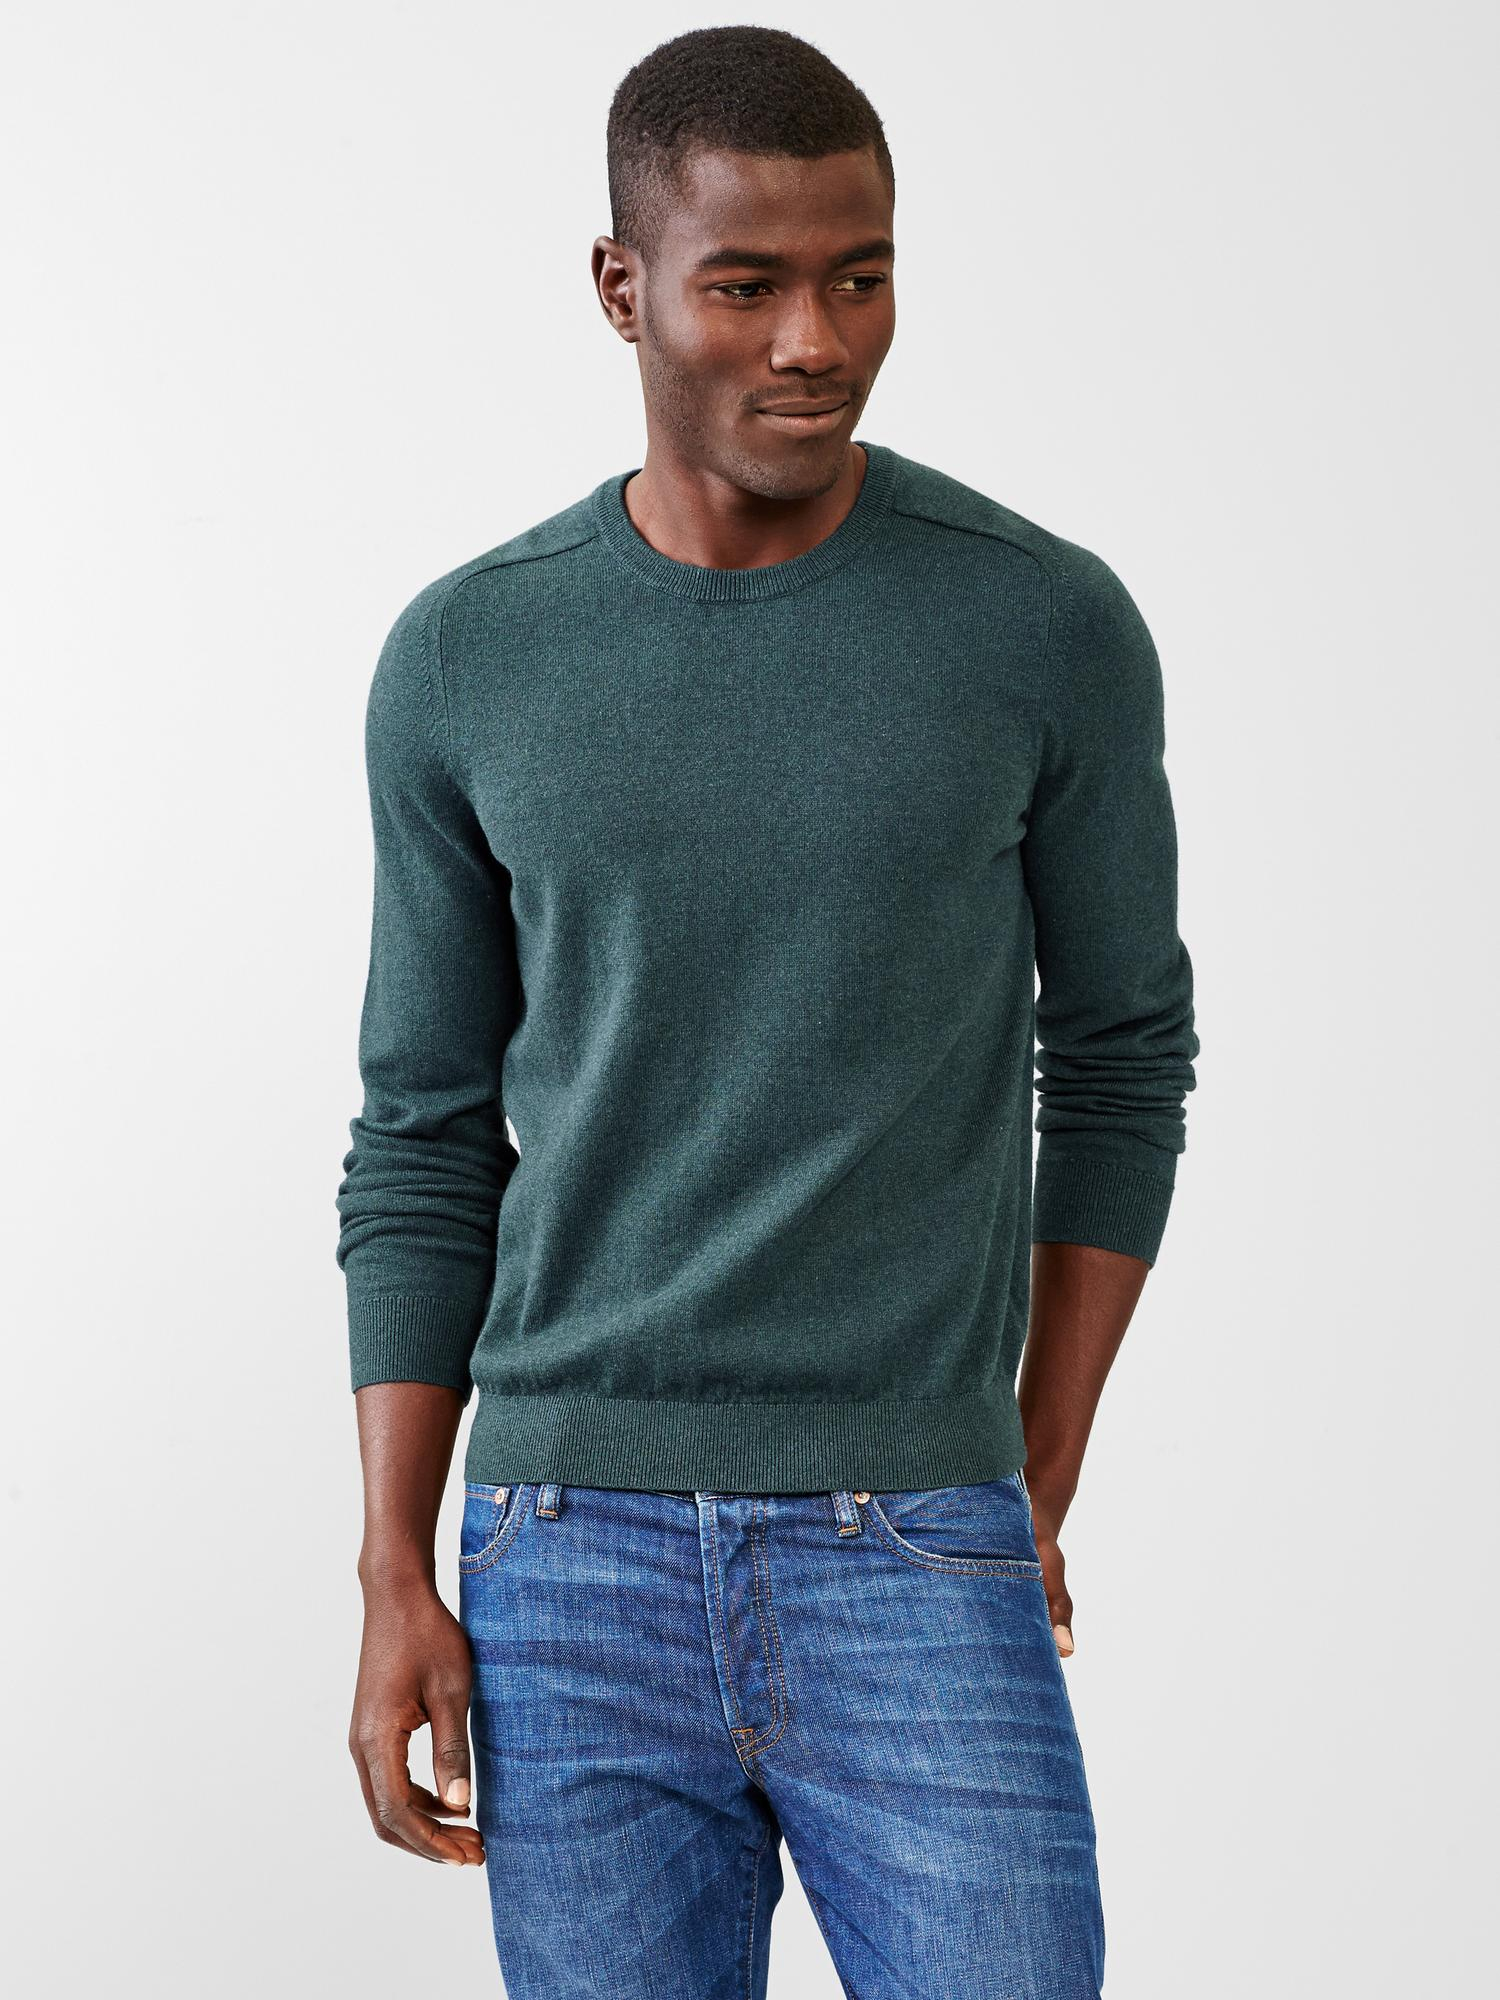 Gap Cashmere Sweater Mens